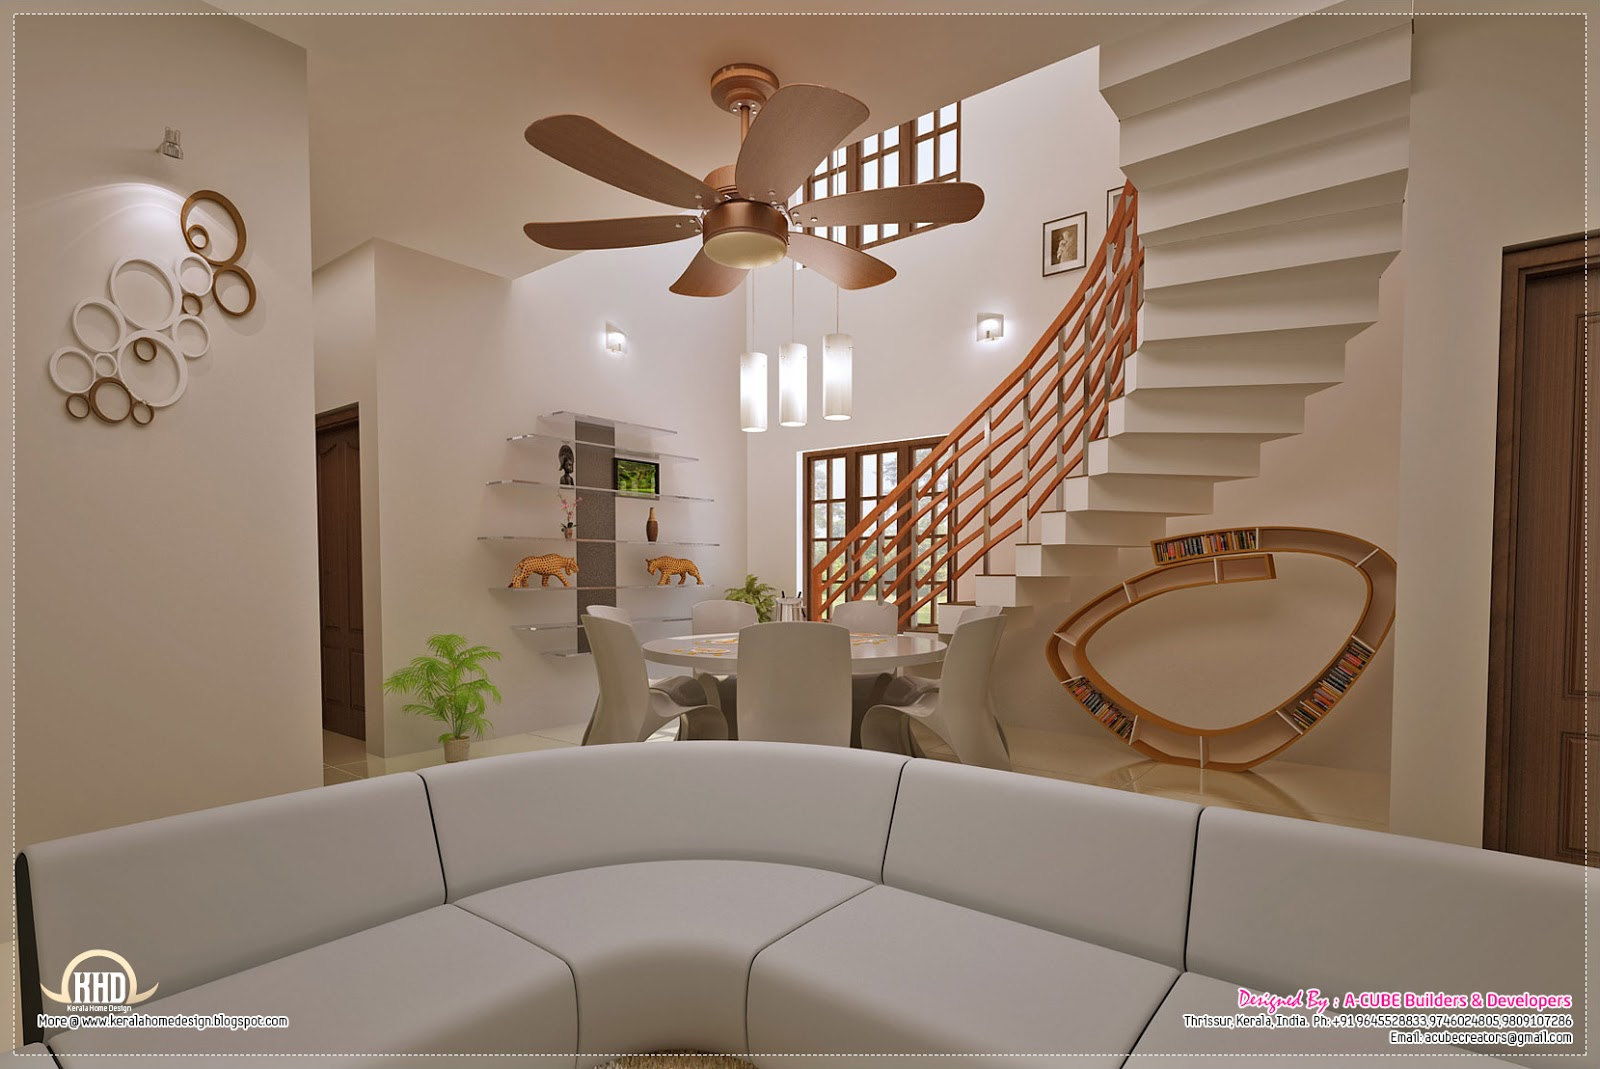 Awesome interior decoration ideas home kerala plans for Interior designs and ideas